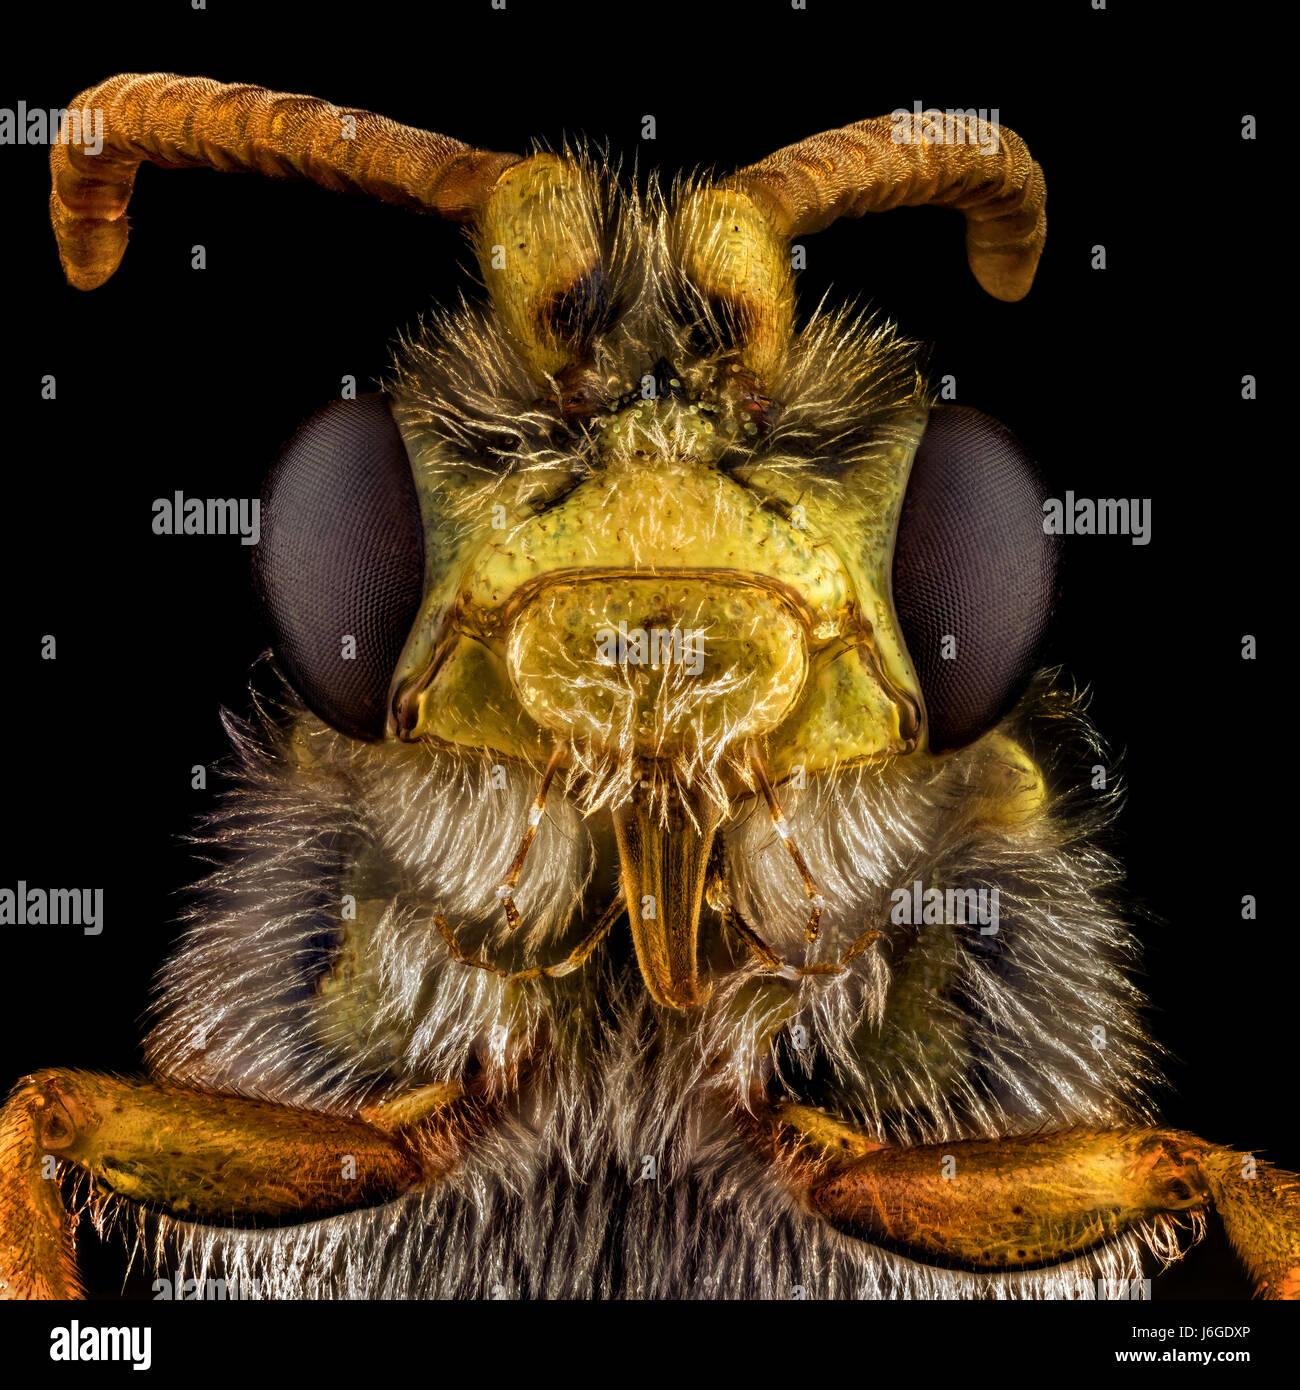 Extreme macro portrait of a bee, magnified through a microscope objective. - Stock Image